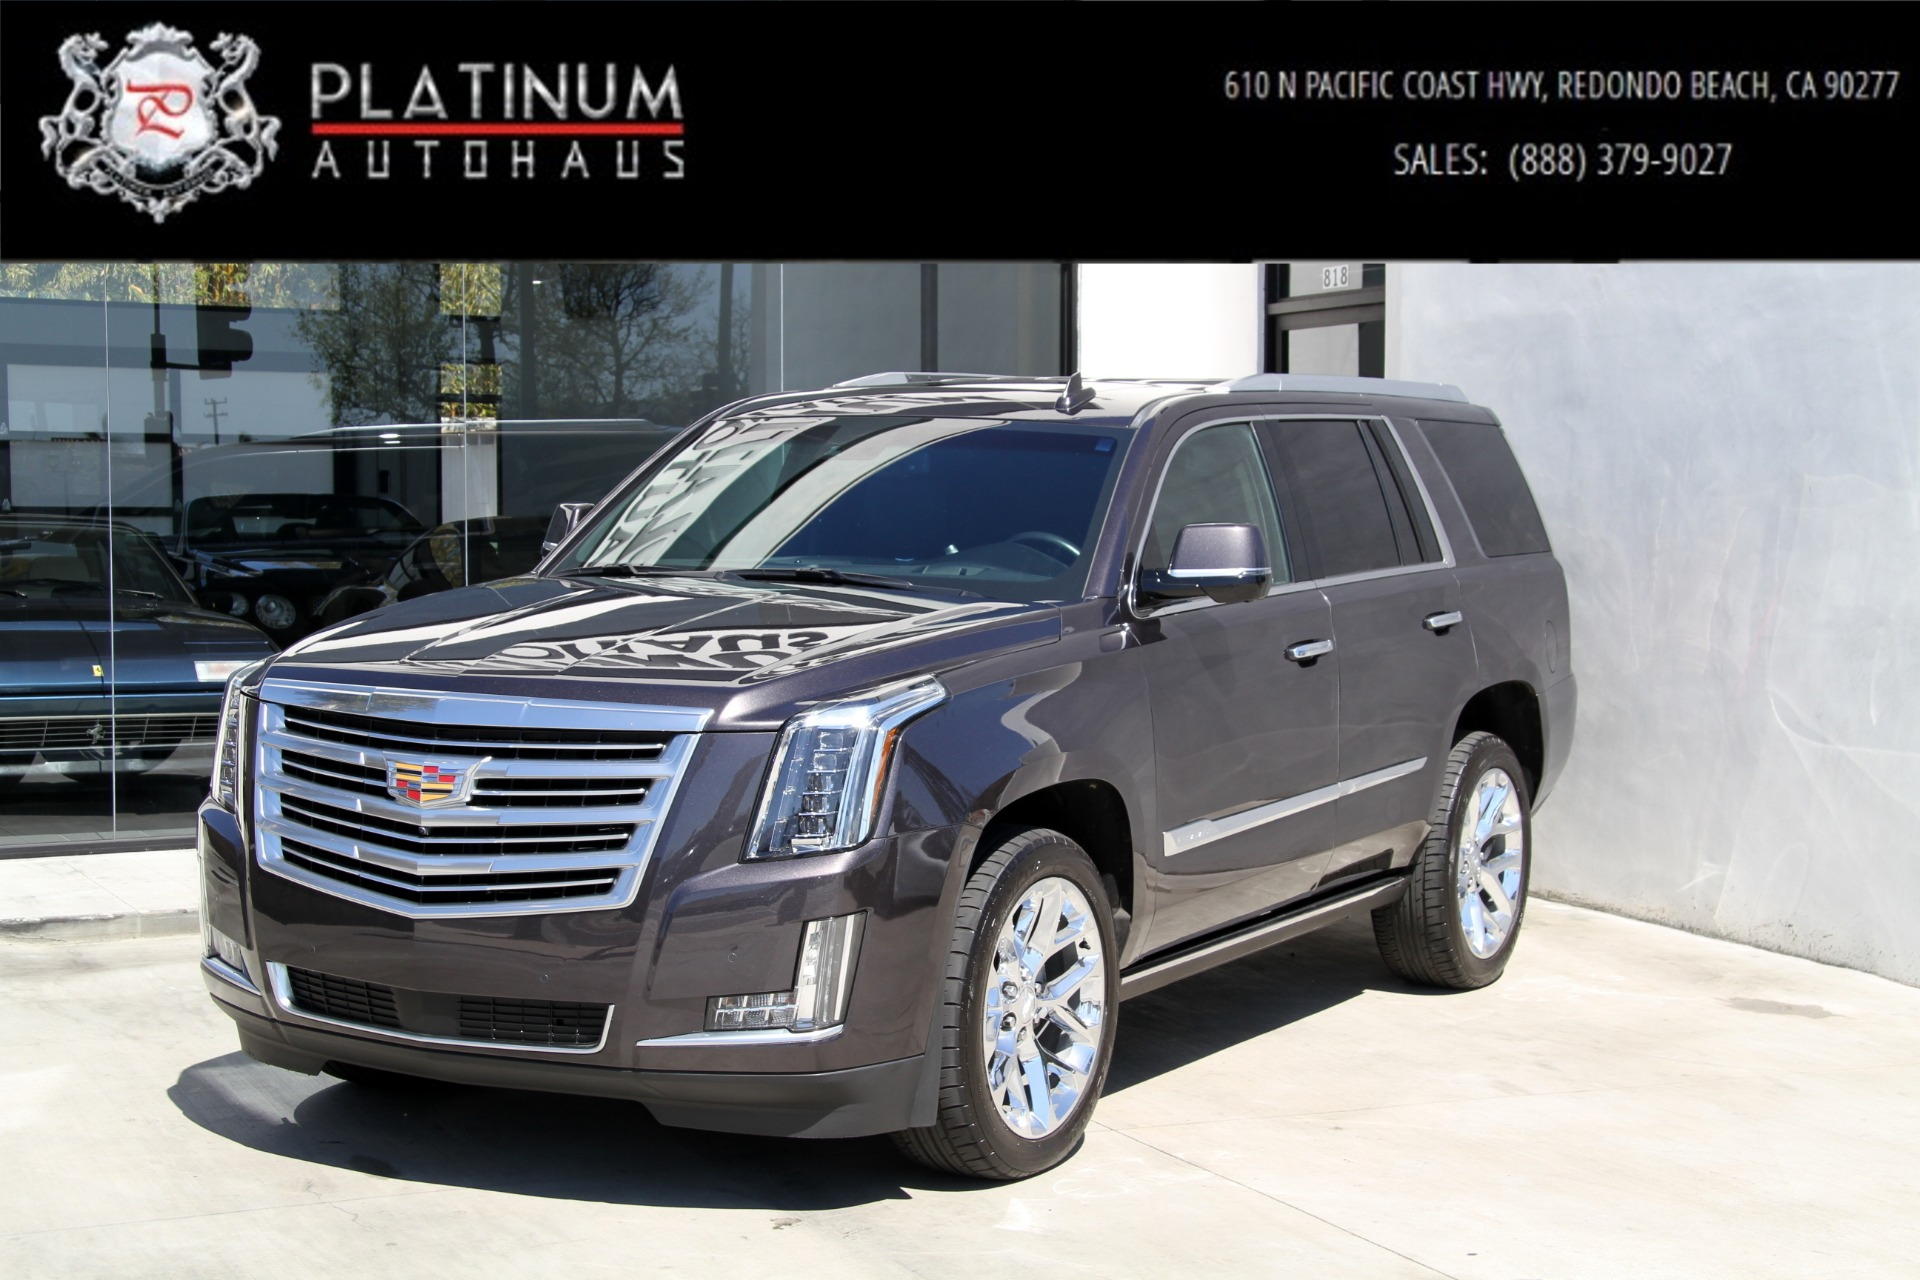 cn media cadillac english gm pages en dealers content dealer photos galleries detail facilities